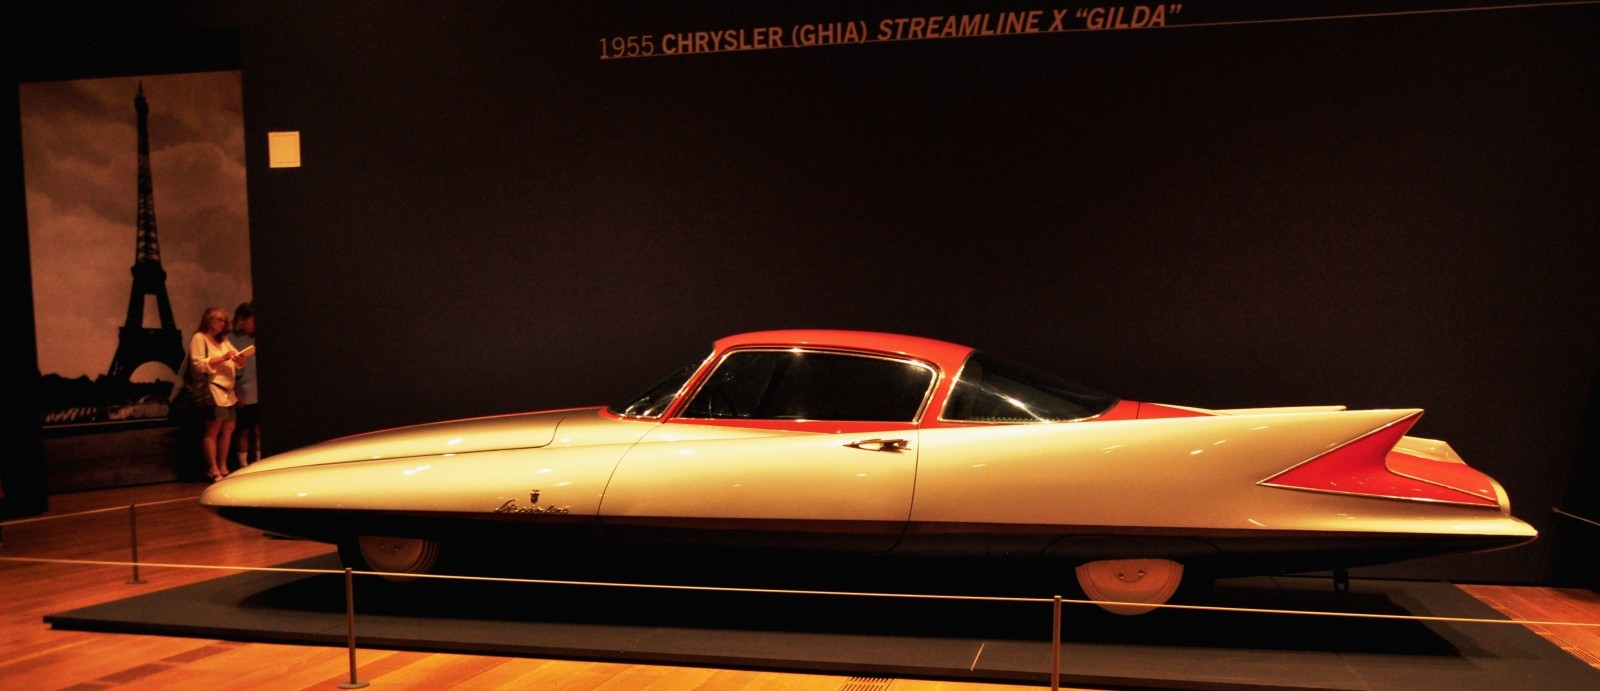 Atlanta Dream Cars - 1955 Chrysler Streamline X Ghilda by GHIA is Turbine Car Ideal 9